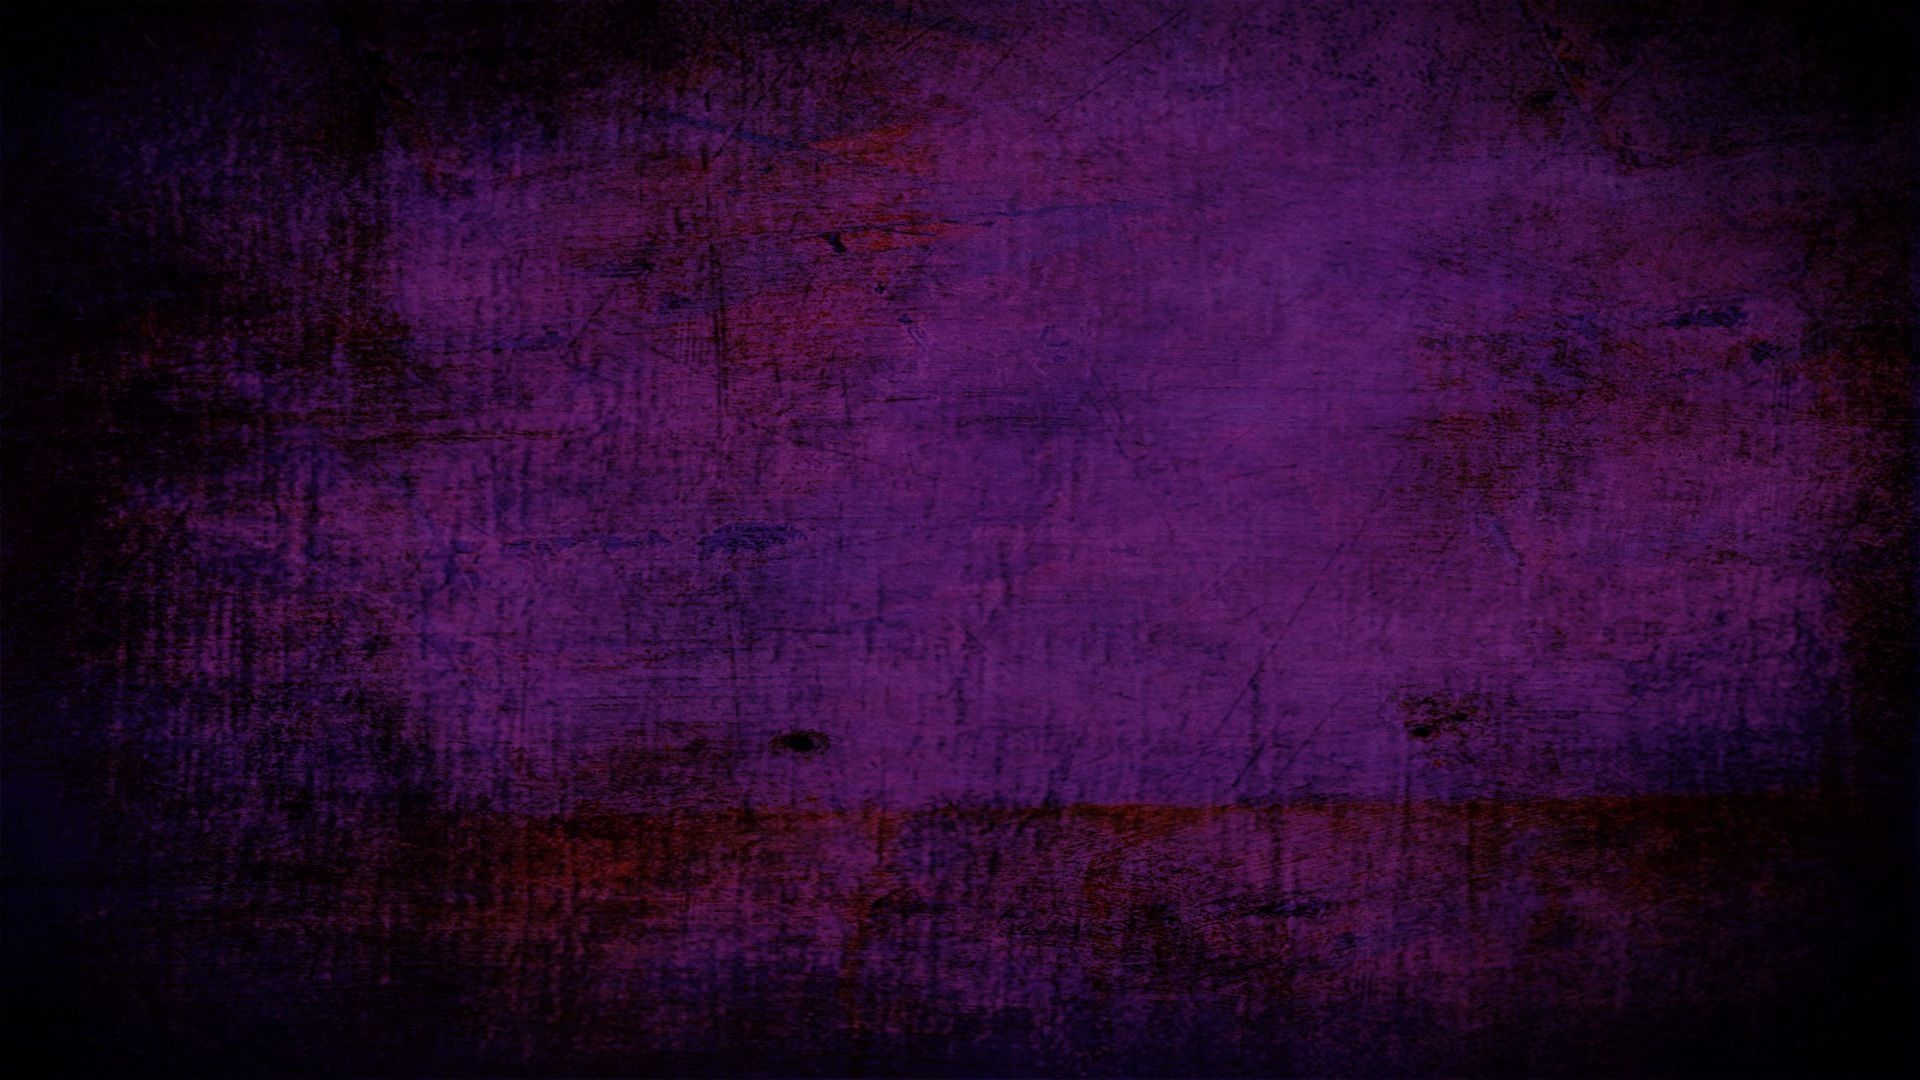 Textured background images new for Black and purple wallpaper